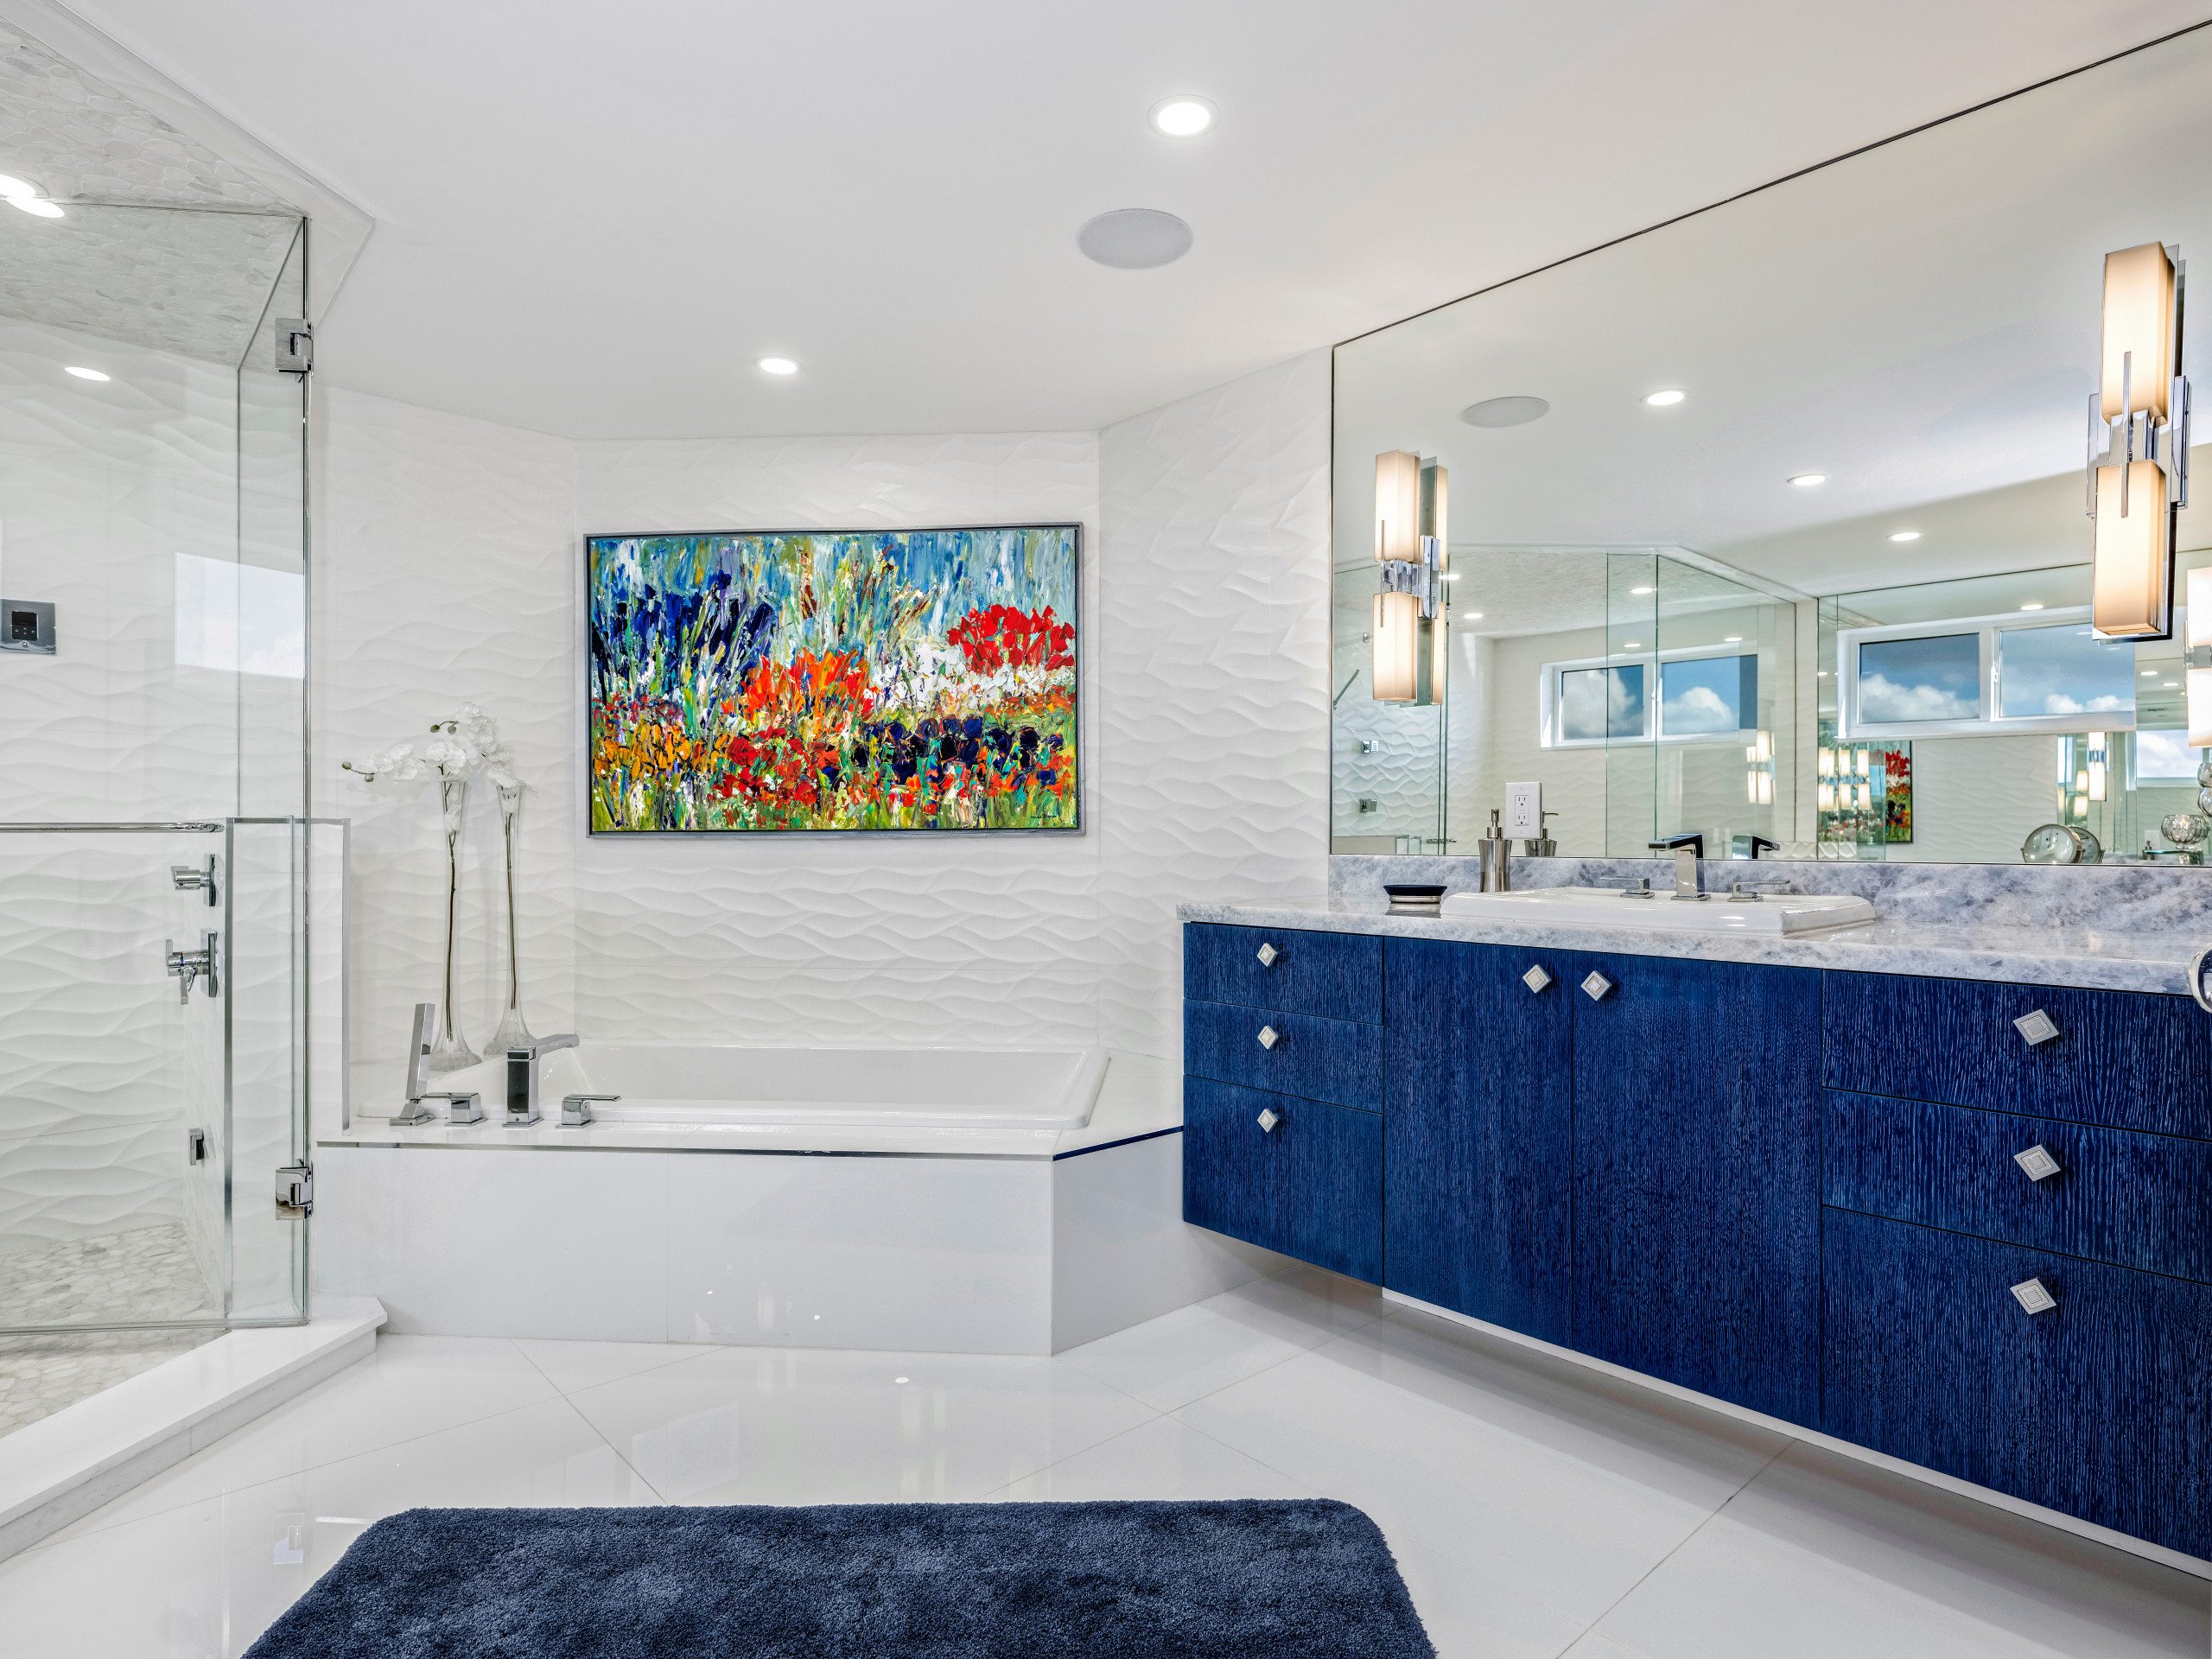 75 Beautiful Drop In Bathtub Pictures Ideas December 2020 Houzz